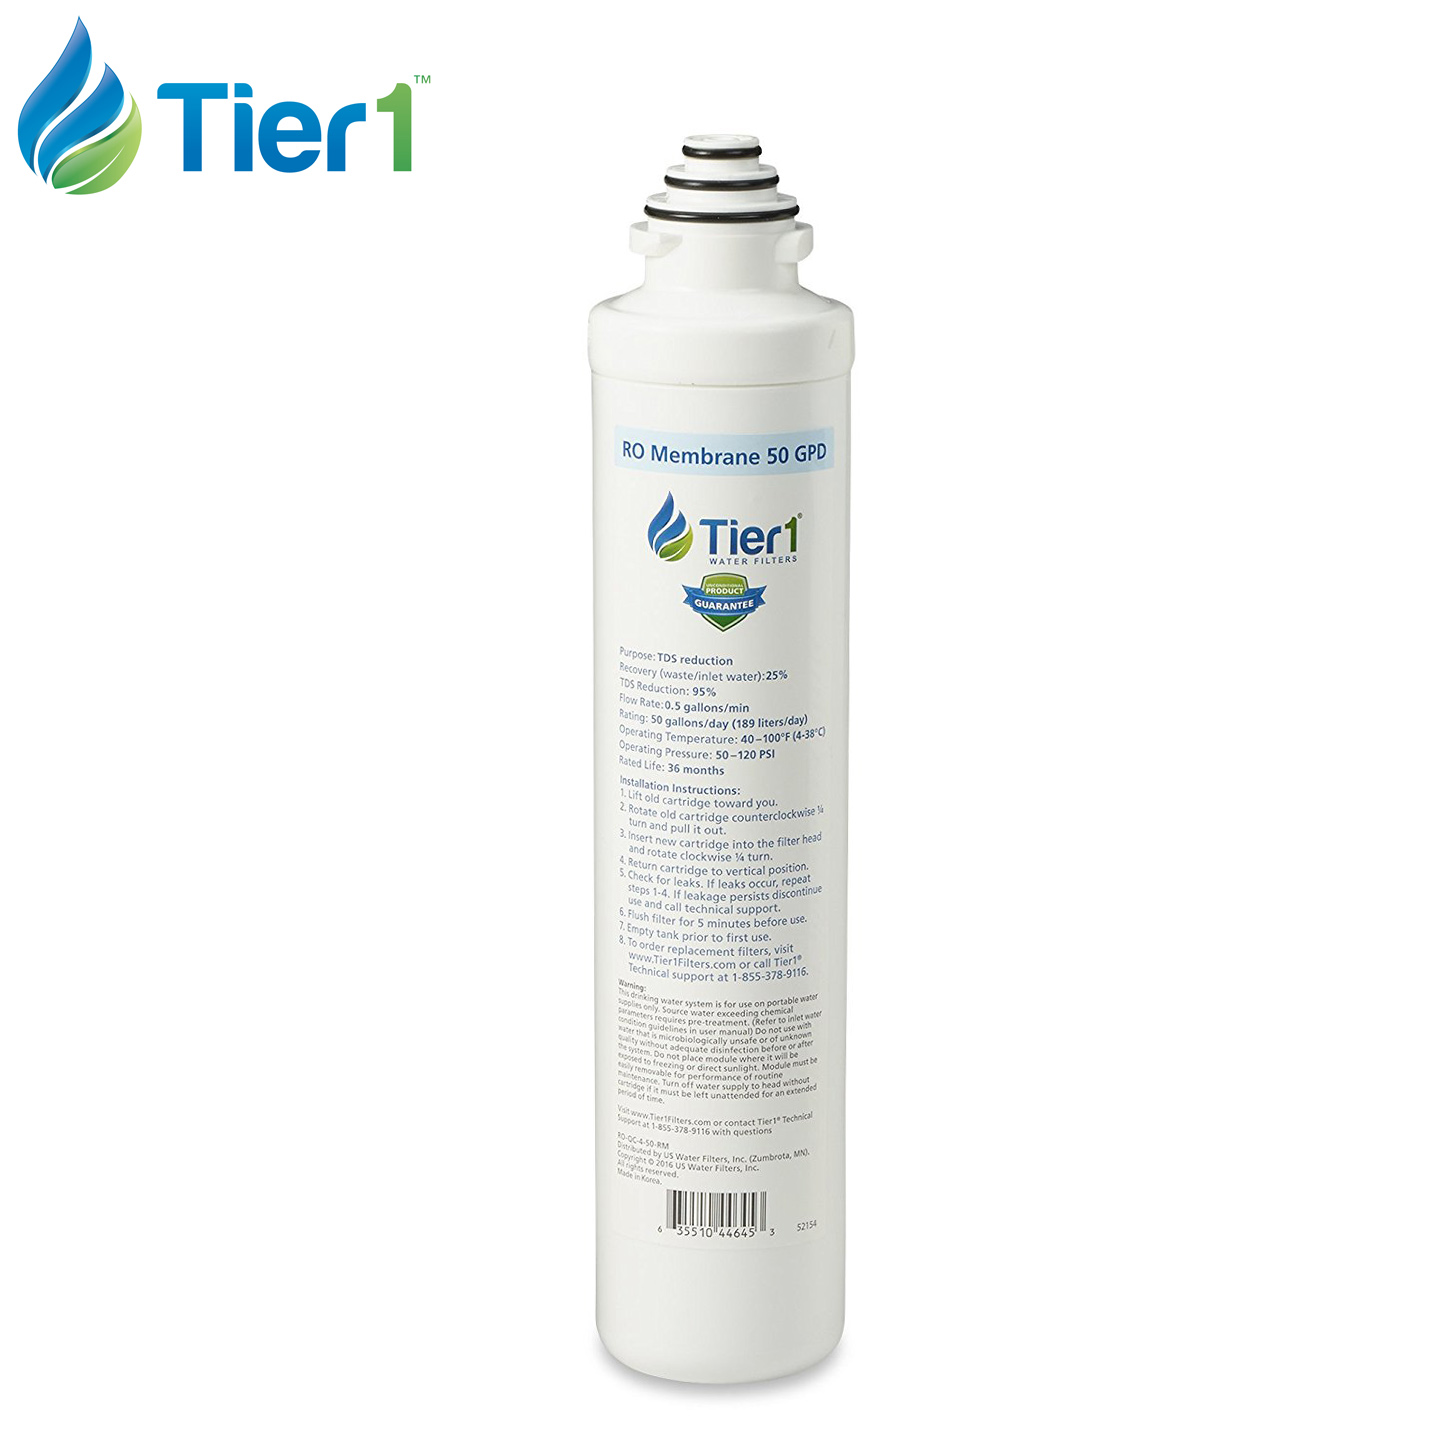 Tier1 Reverse Osmosis Systems and Filters